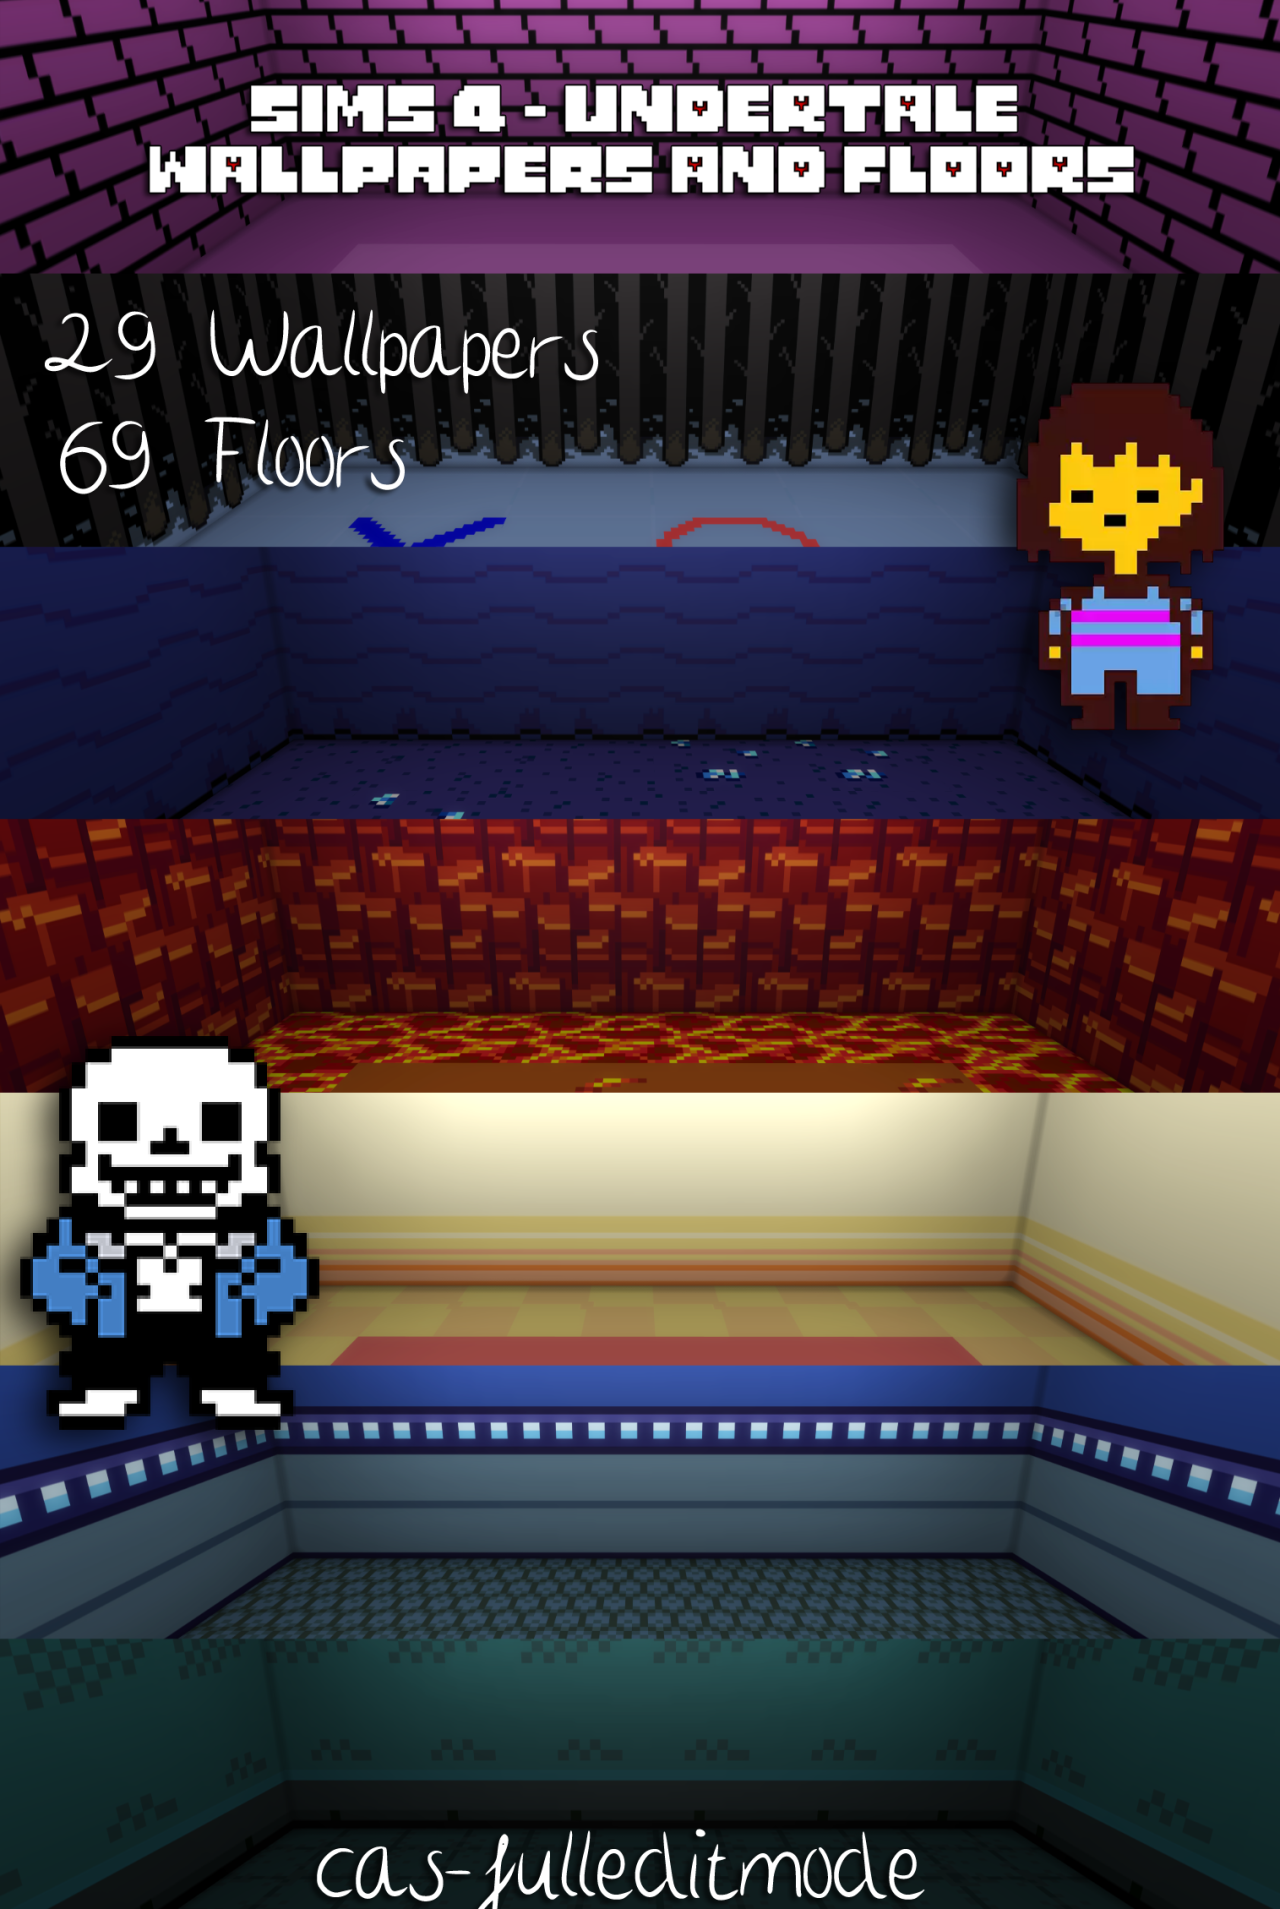 sims 4 undertale floors and wallpapersfinally here they are my